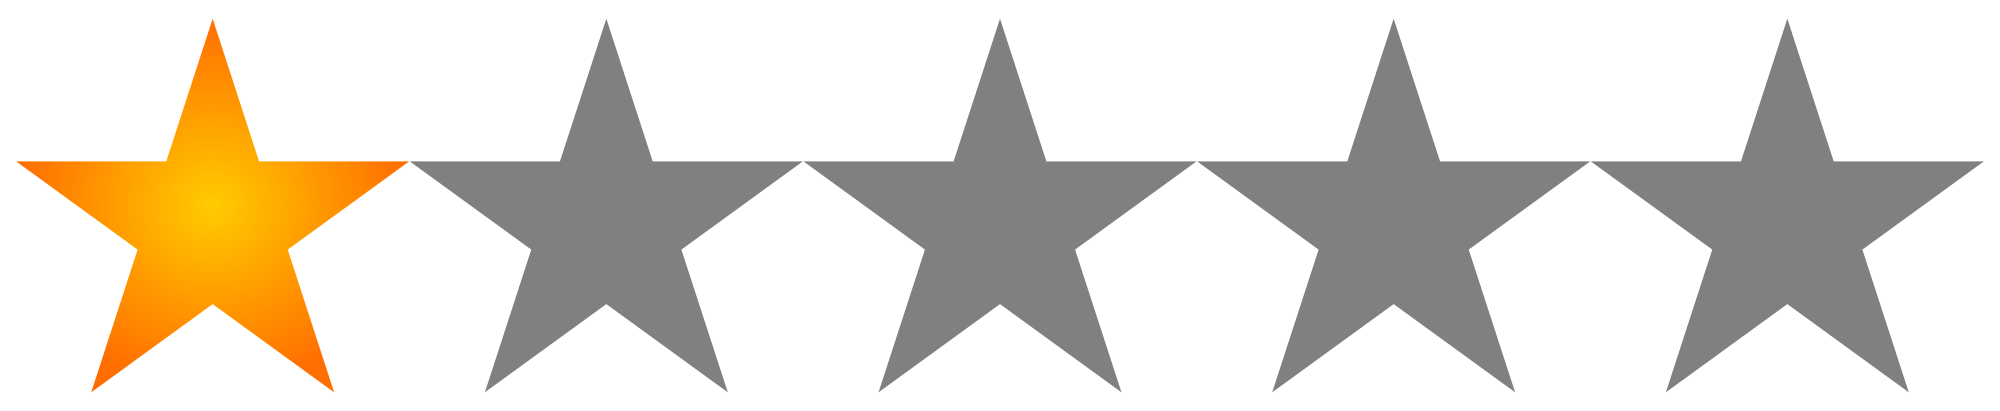 px svg. 5 stars png transparent png black and white download